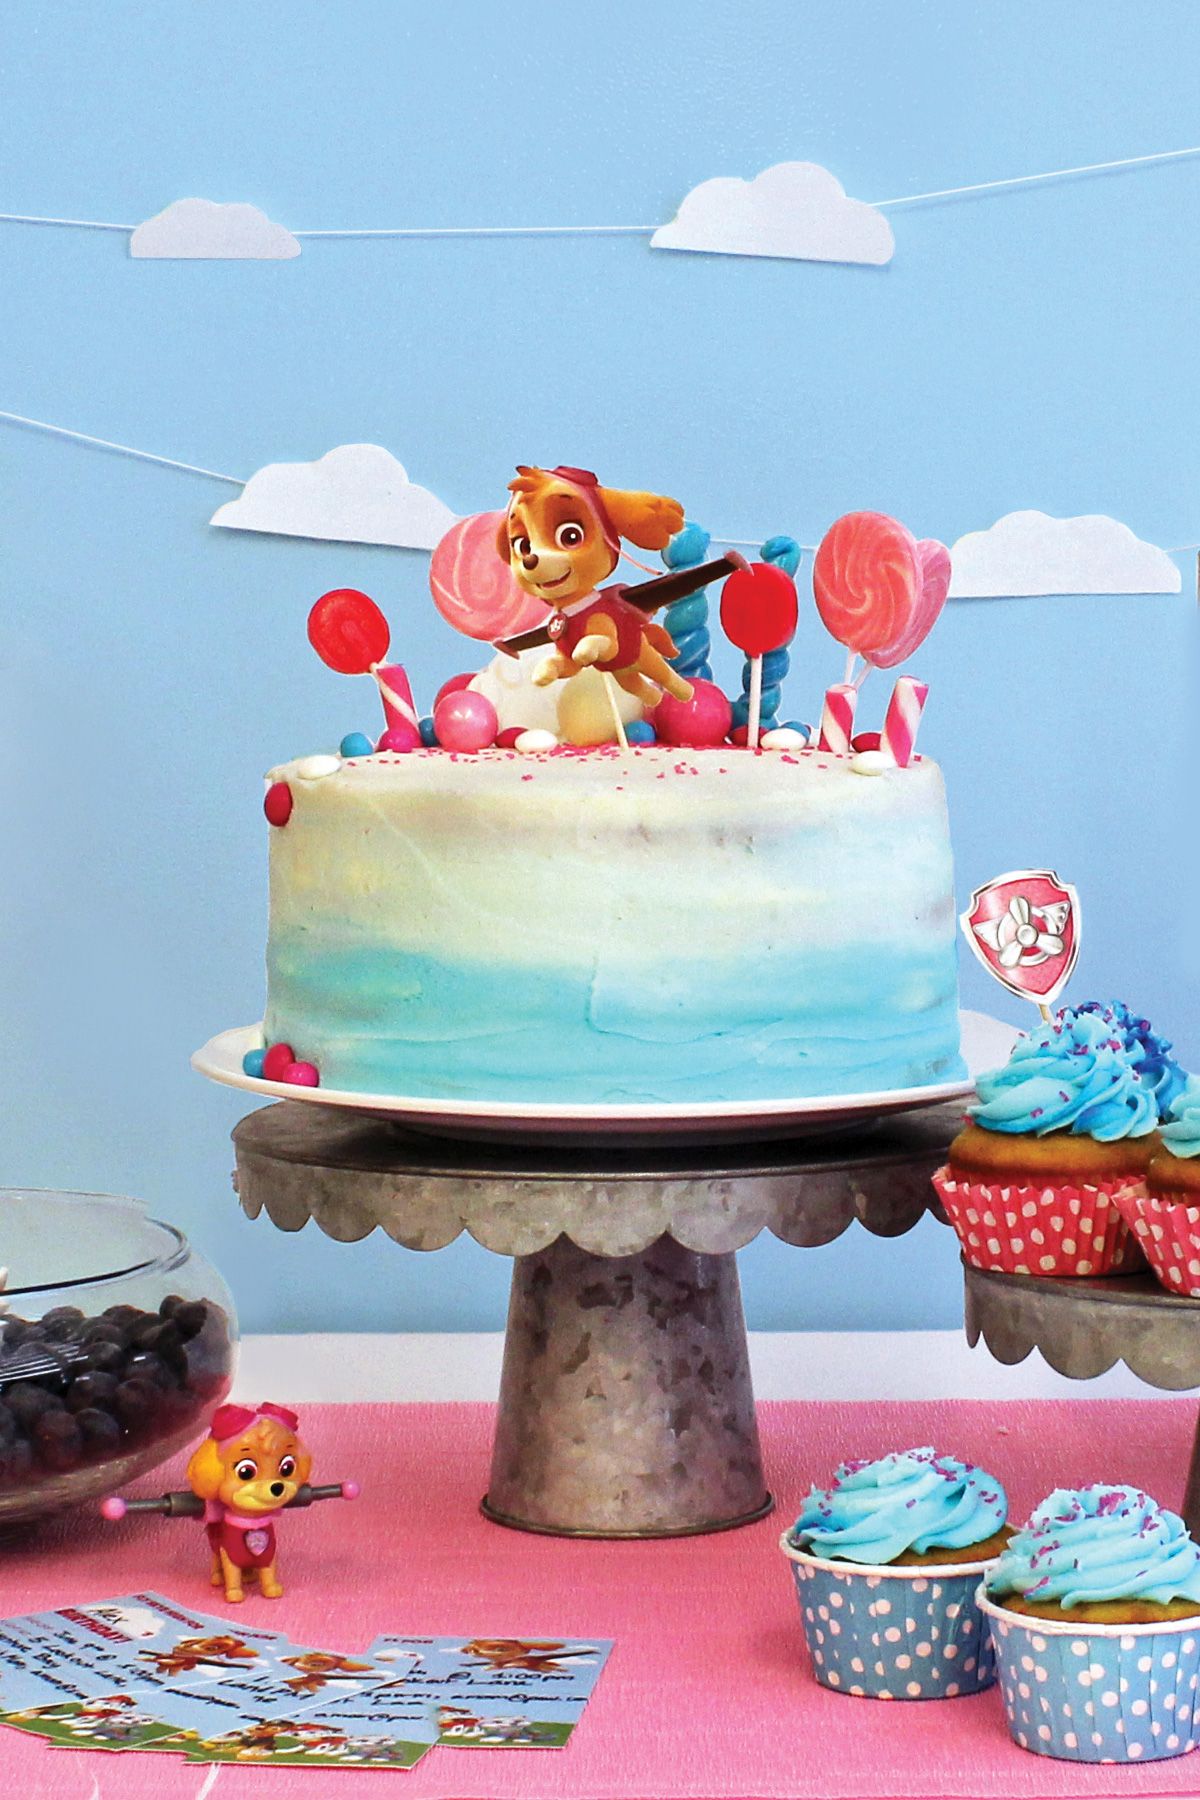 Everything You Need To Plan Your Kids Party Featuring Skye From PAW Patrol